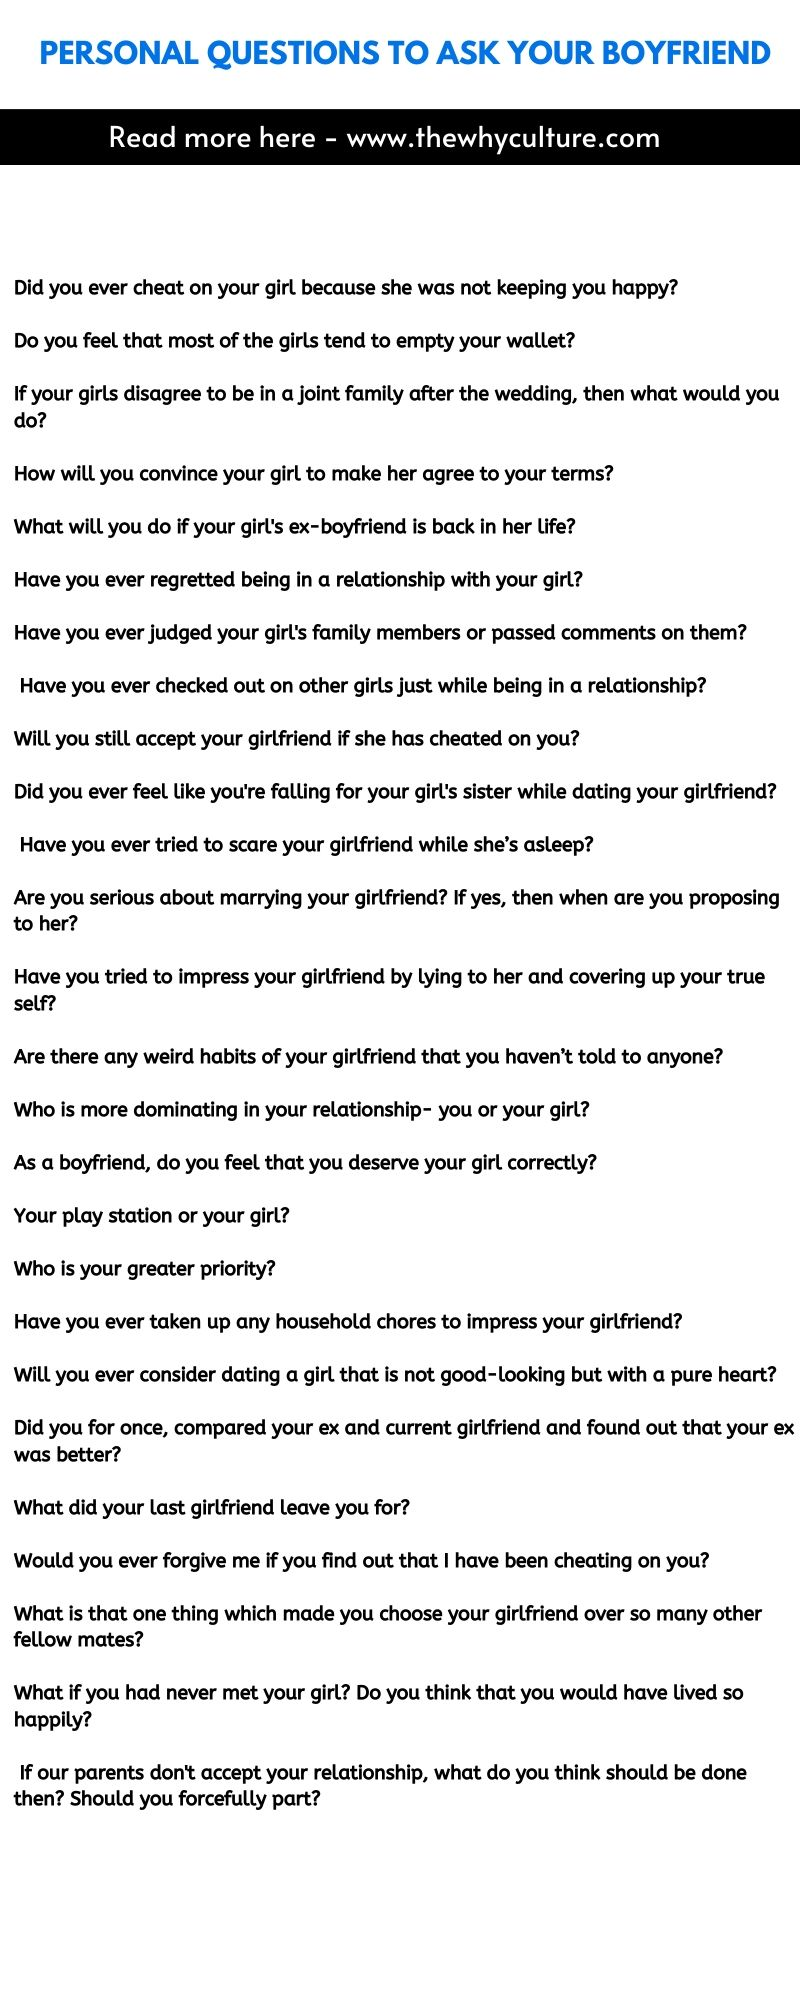 Personal questions to ask your boyfriend - Download the list